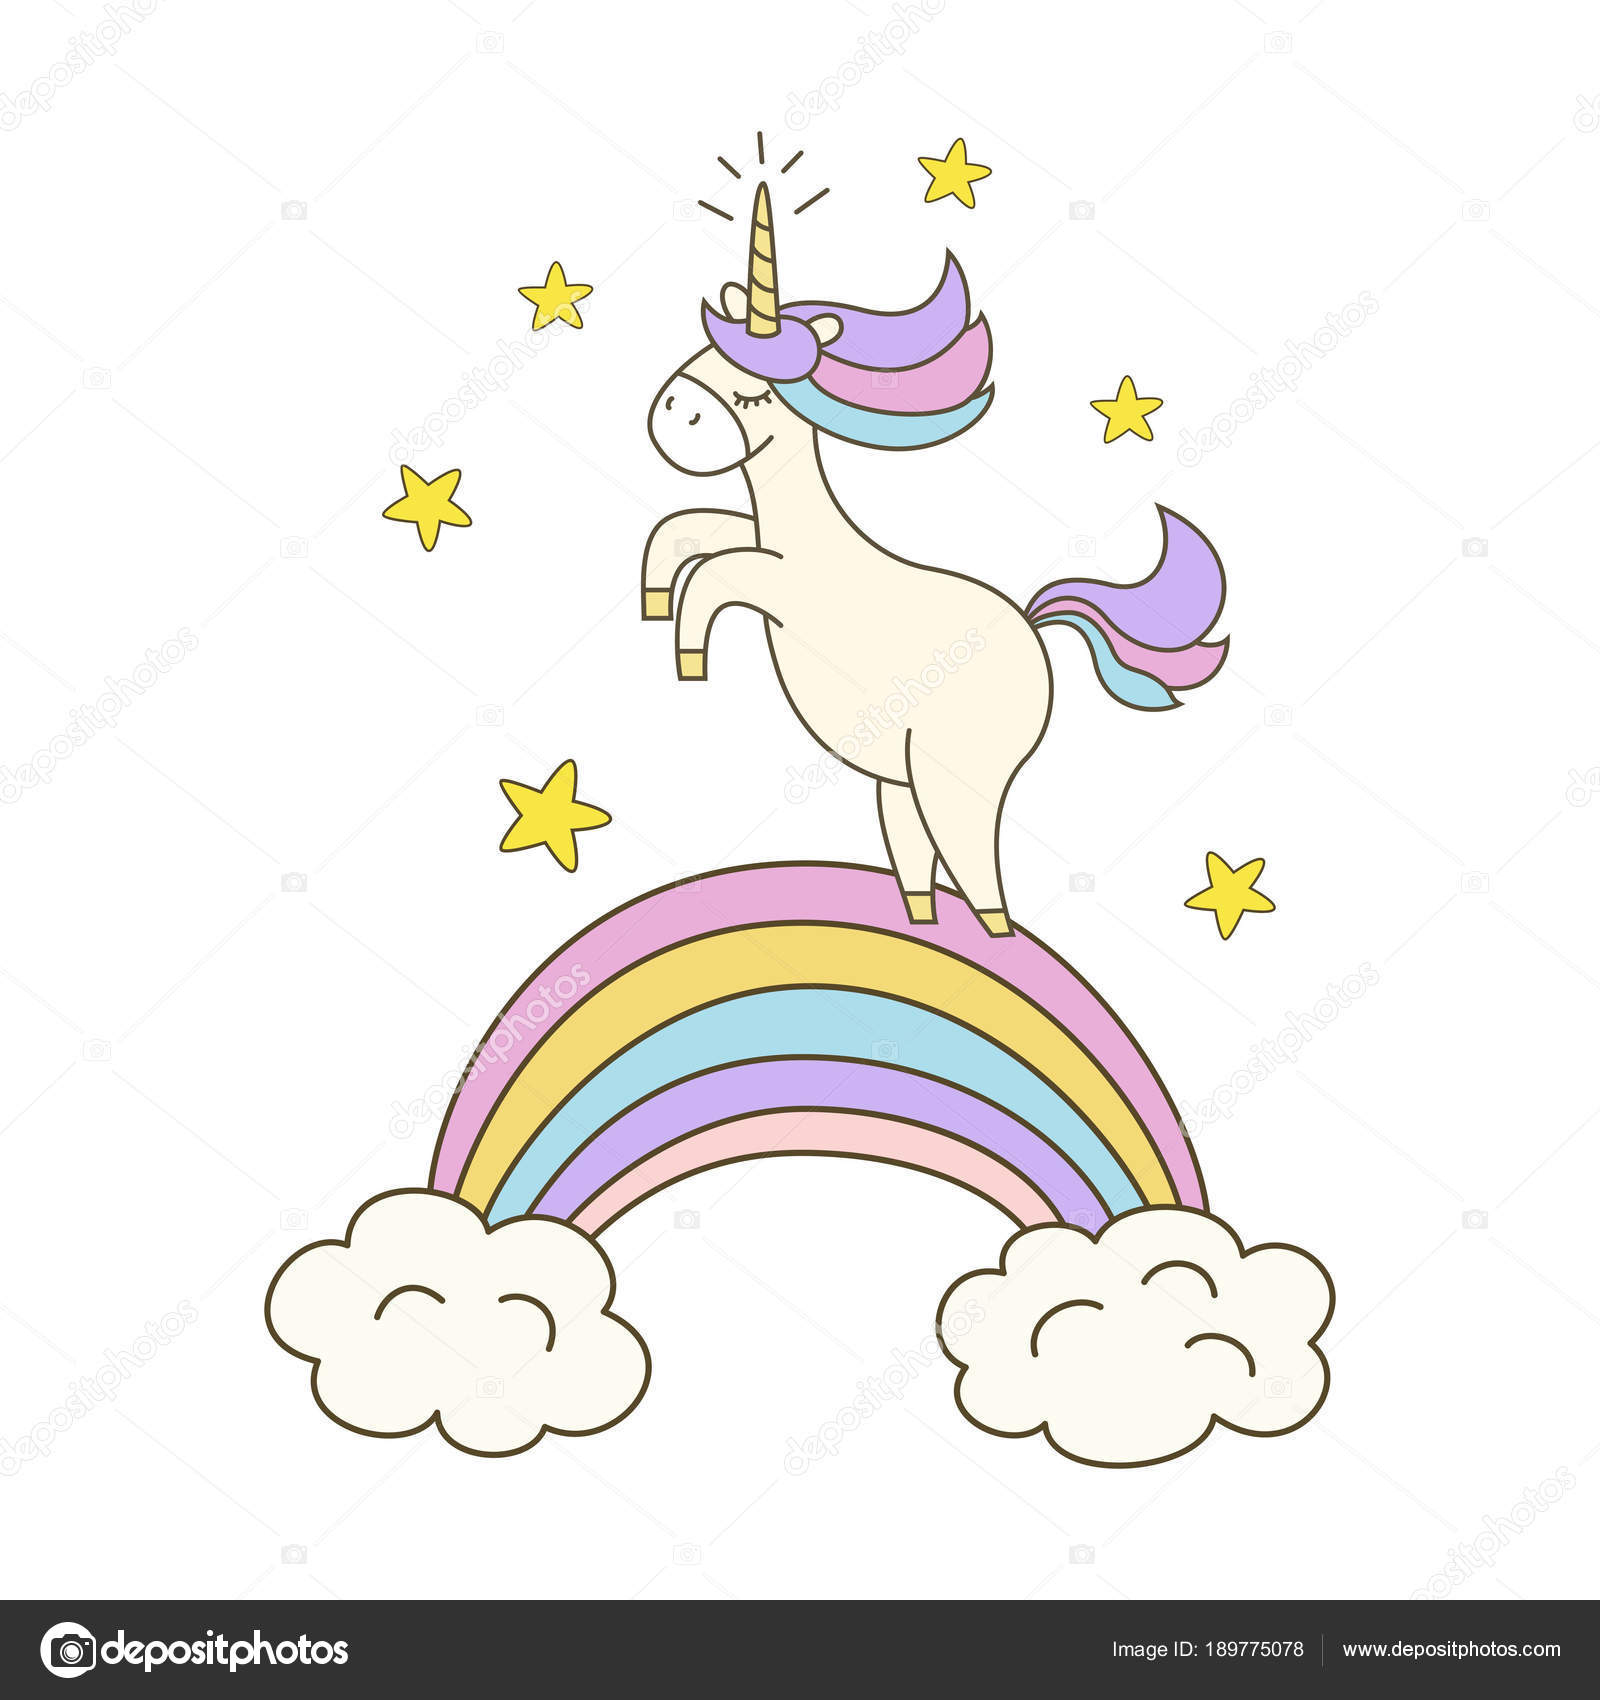 Illustration with cute unicorn on white background